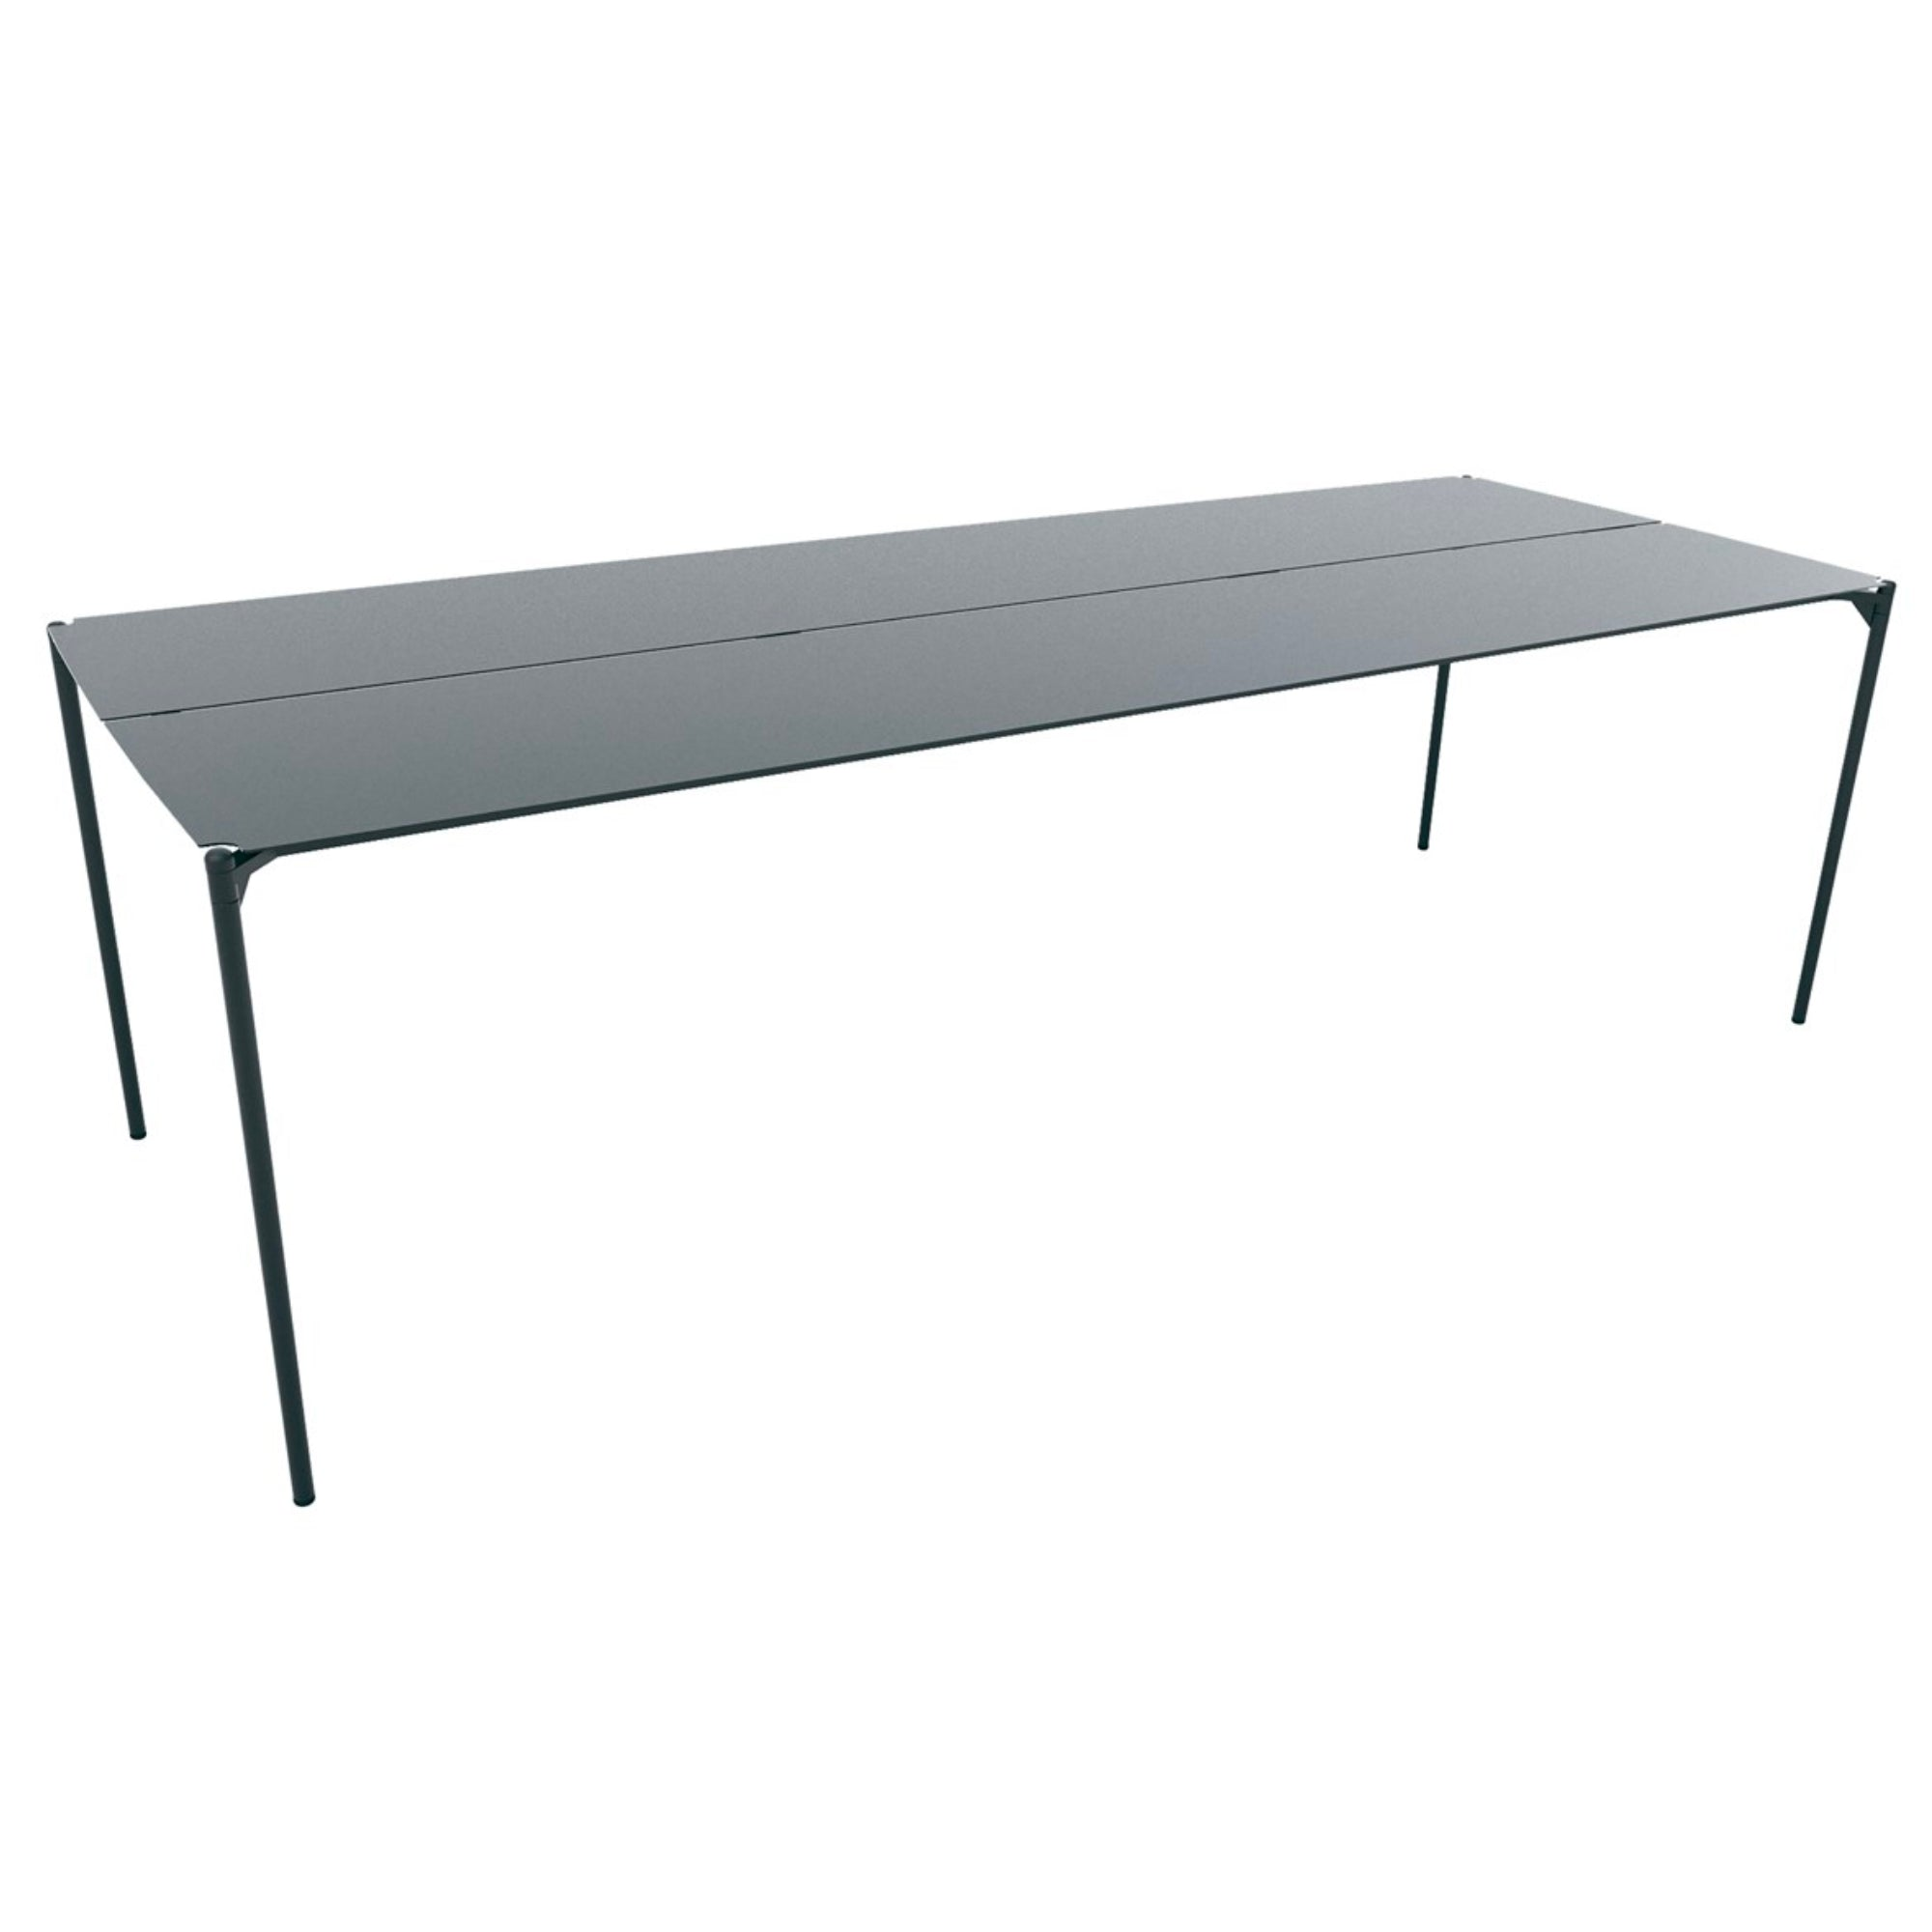 Aytm NOVO Dining Table Rectangular 240 x 90 , black - black